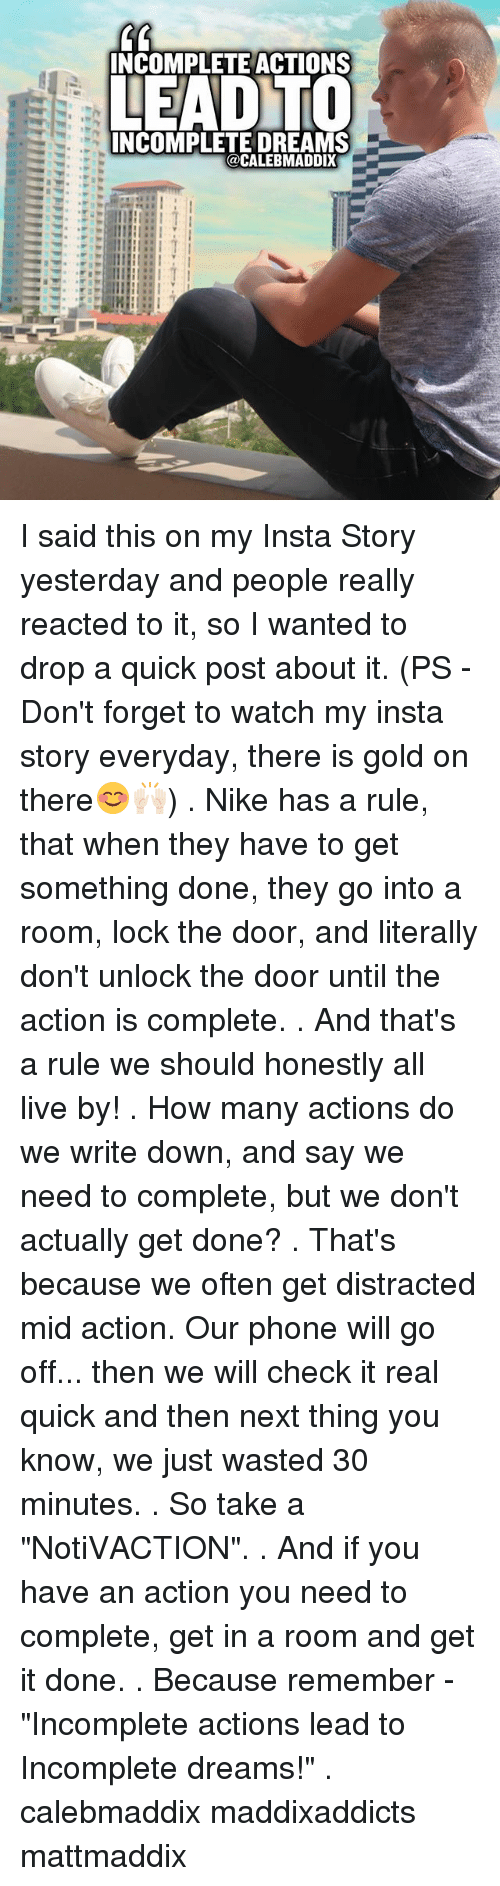 """writing down: INCOMPLETE ACTIONS  LEADTO  INCOMPLETE DREAMS  CALEBMADDIX I said this on my Insta Story yesterday and people really reacted to it, so I wanted to drop a quick post about it. (PS - Don't forget to watch my insta story everyday, there is gold on there😊🙌🏻) . Nike has a rule, that when they have to get something done, they go into a room, lock the door, and literally don't unlock the door until the action is complete. . And that's a rule we should honestly all live by! . How many actions do we write down, and say we need to complete, but we don't actually get done? . That's because we often get distracted mid action. Our phone will go off... then we will check it real quick and then next thing you know, we just wasted 30 minutes. . So take a """"NotiVACTION"""". . And if you have an action you need to complete, get in a room and get it done. . Because remember - """"Incomplete actions lead to Incomplete dreams!"""" . calebmaddix maddixaddicts mattmaddix"""